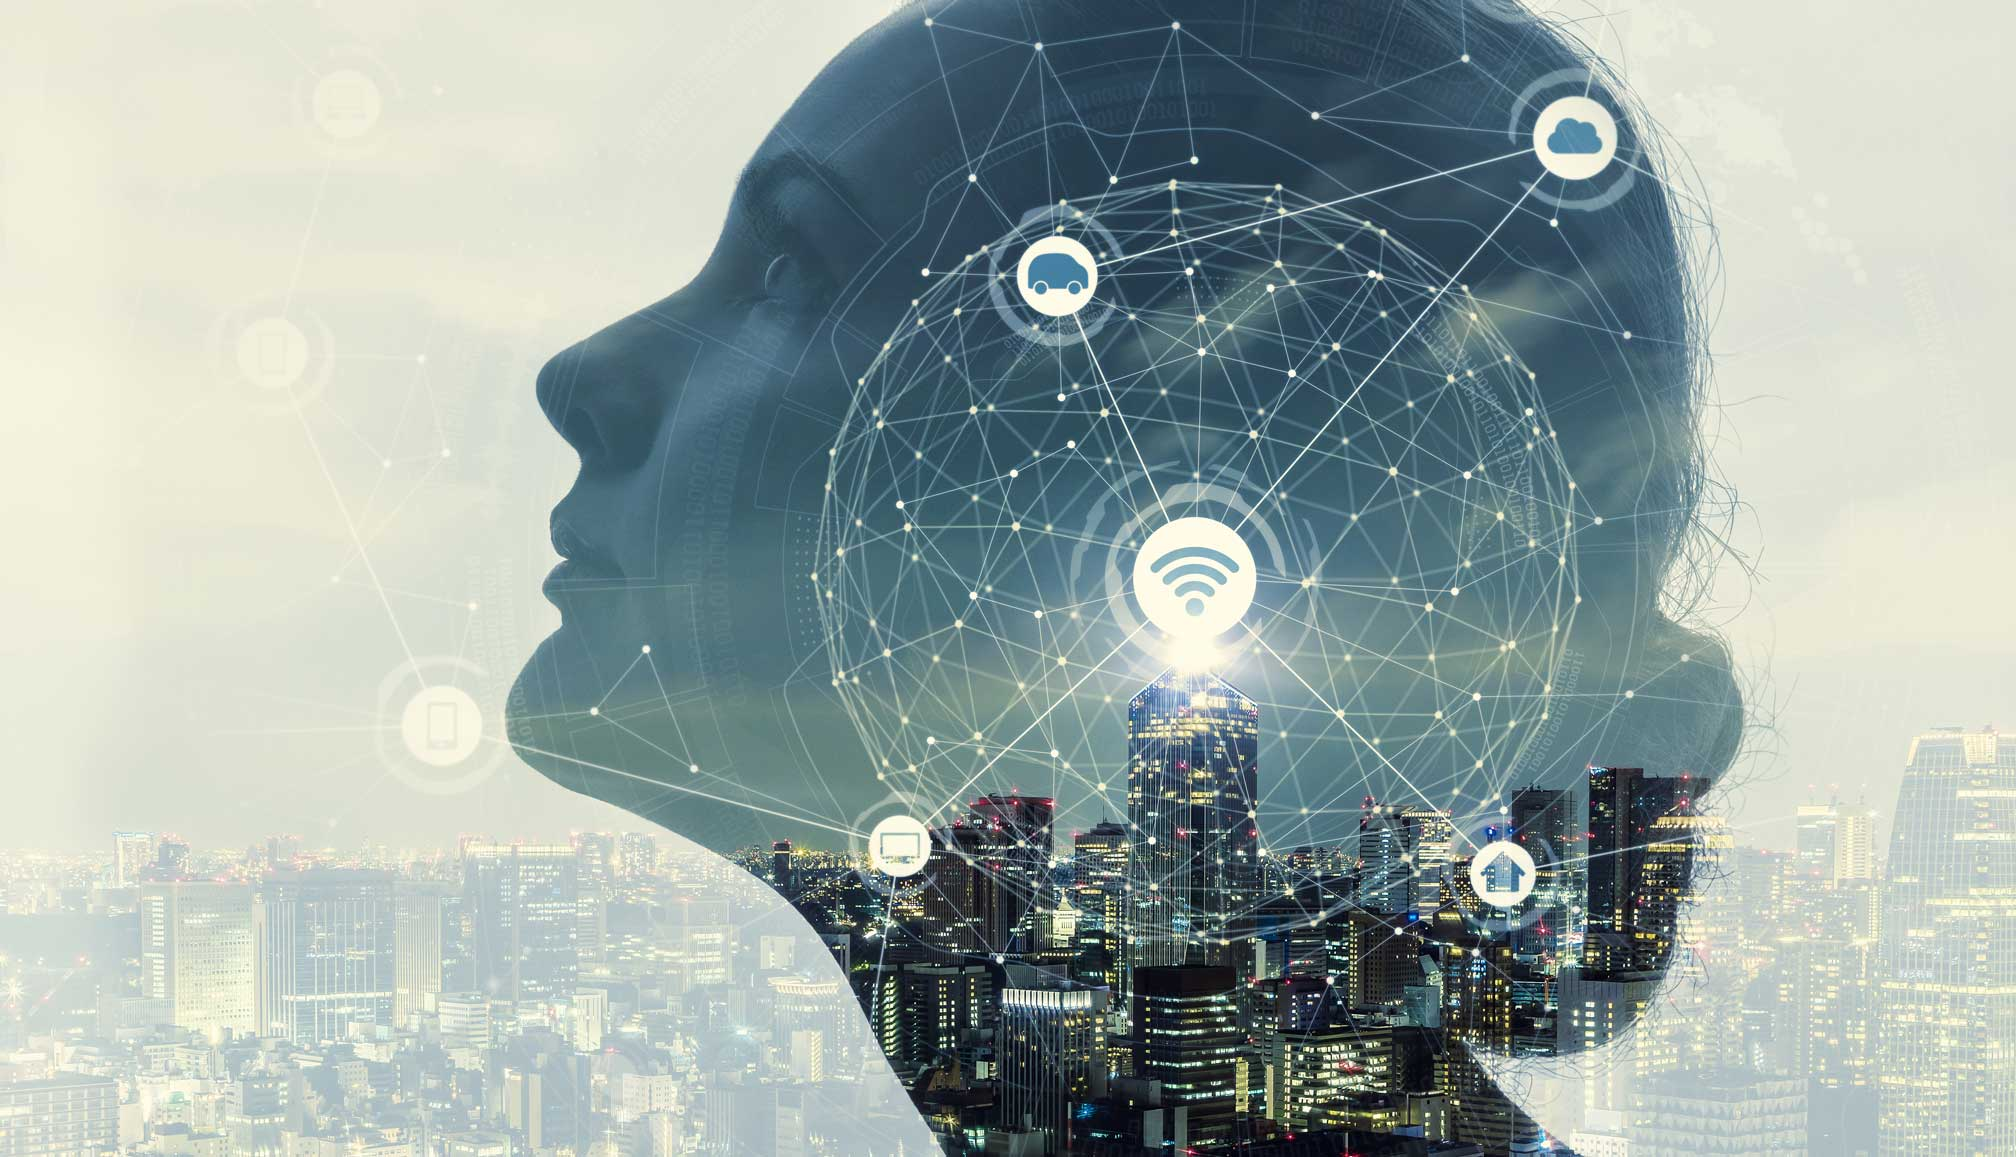 Helping Women Rise: How Networks and Technology Can Accelerate Women's Advancement